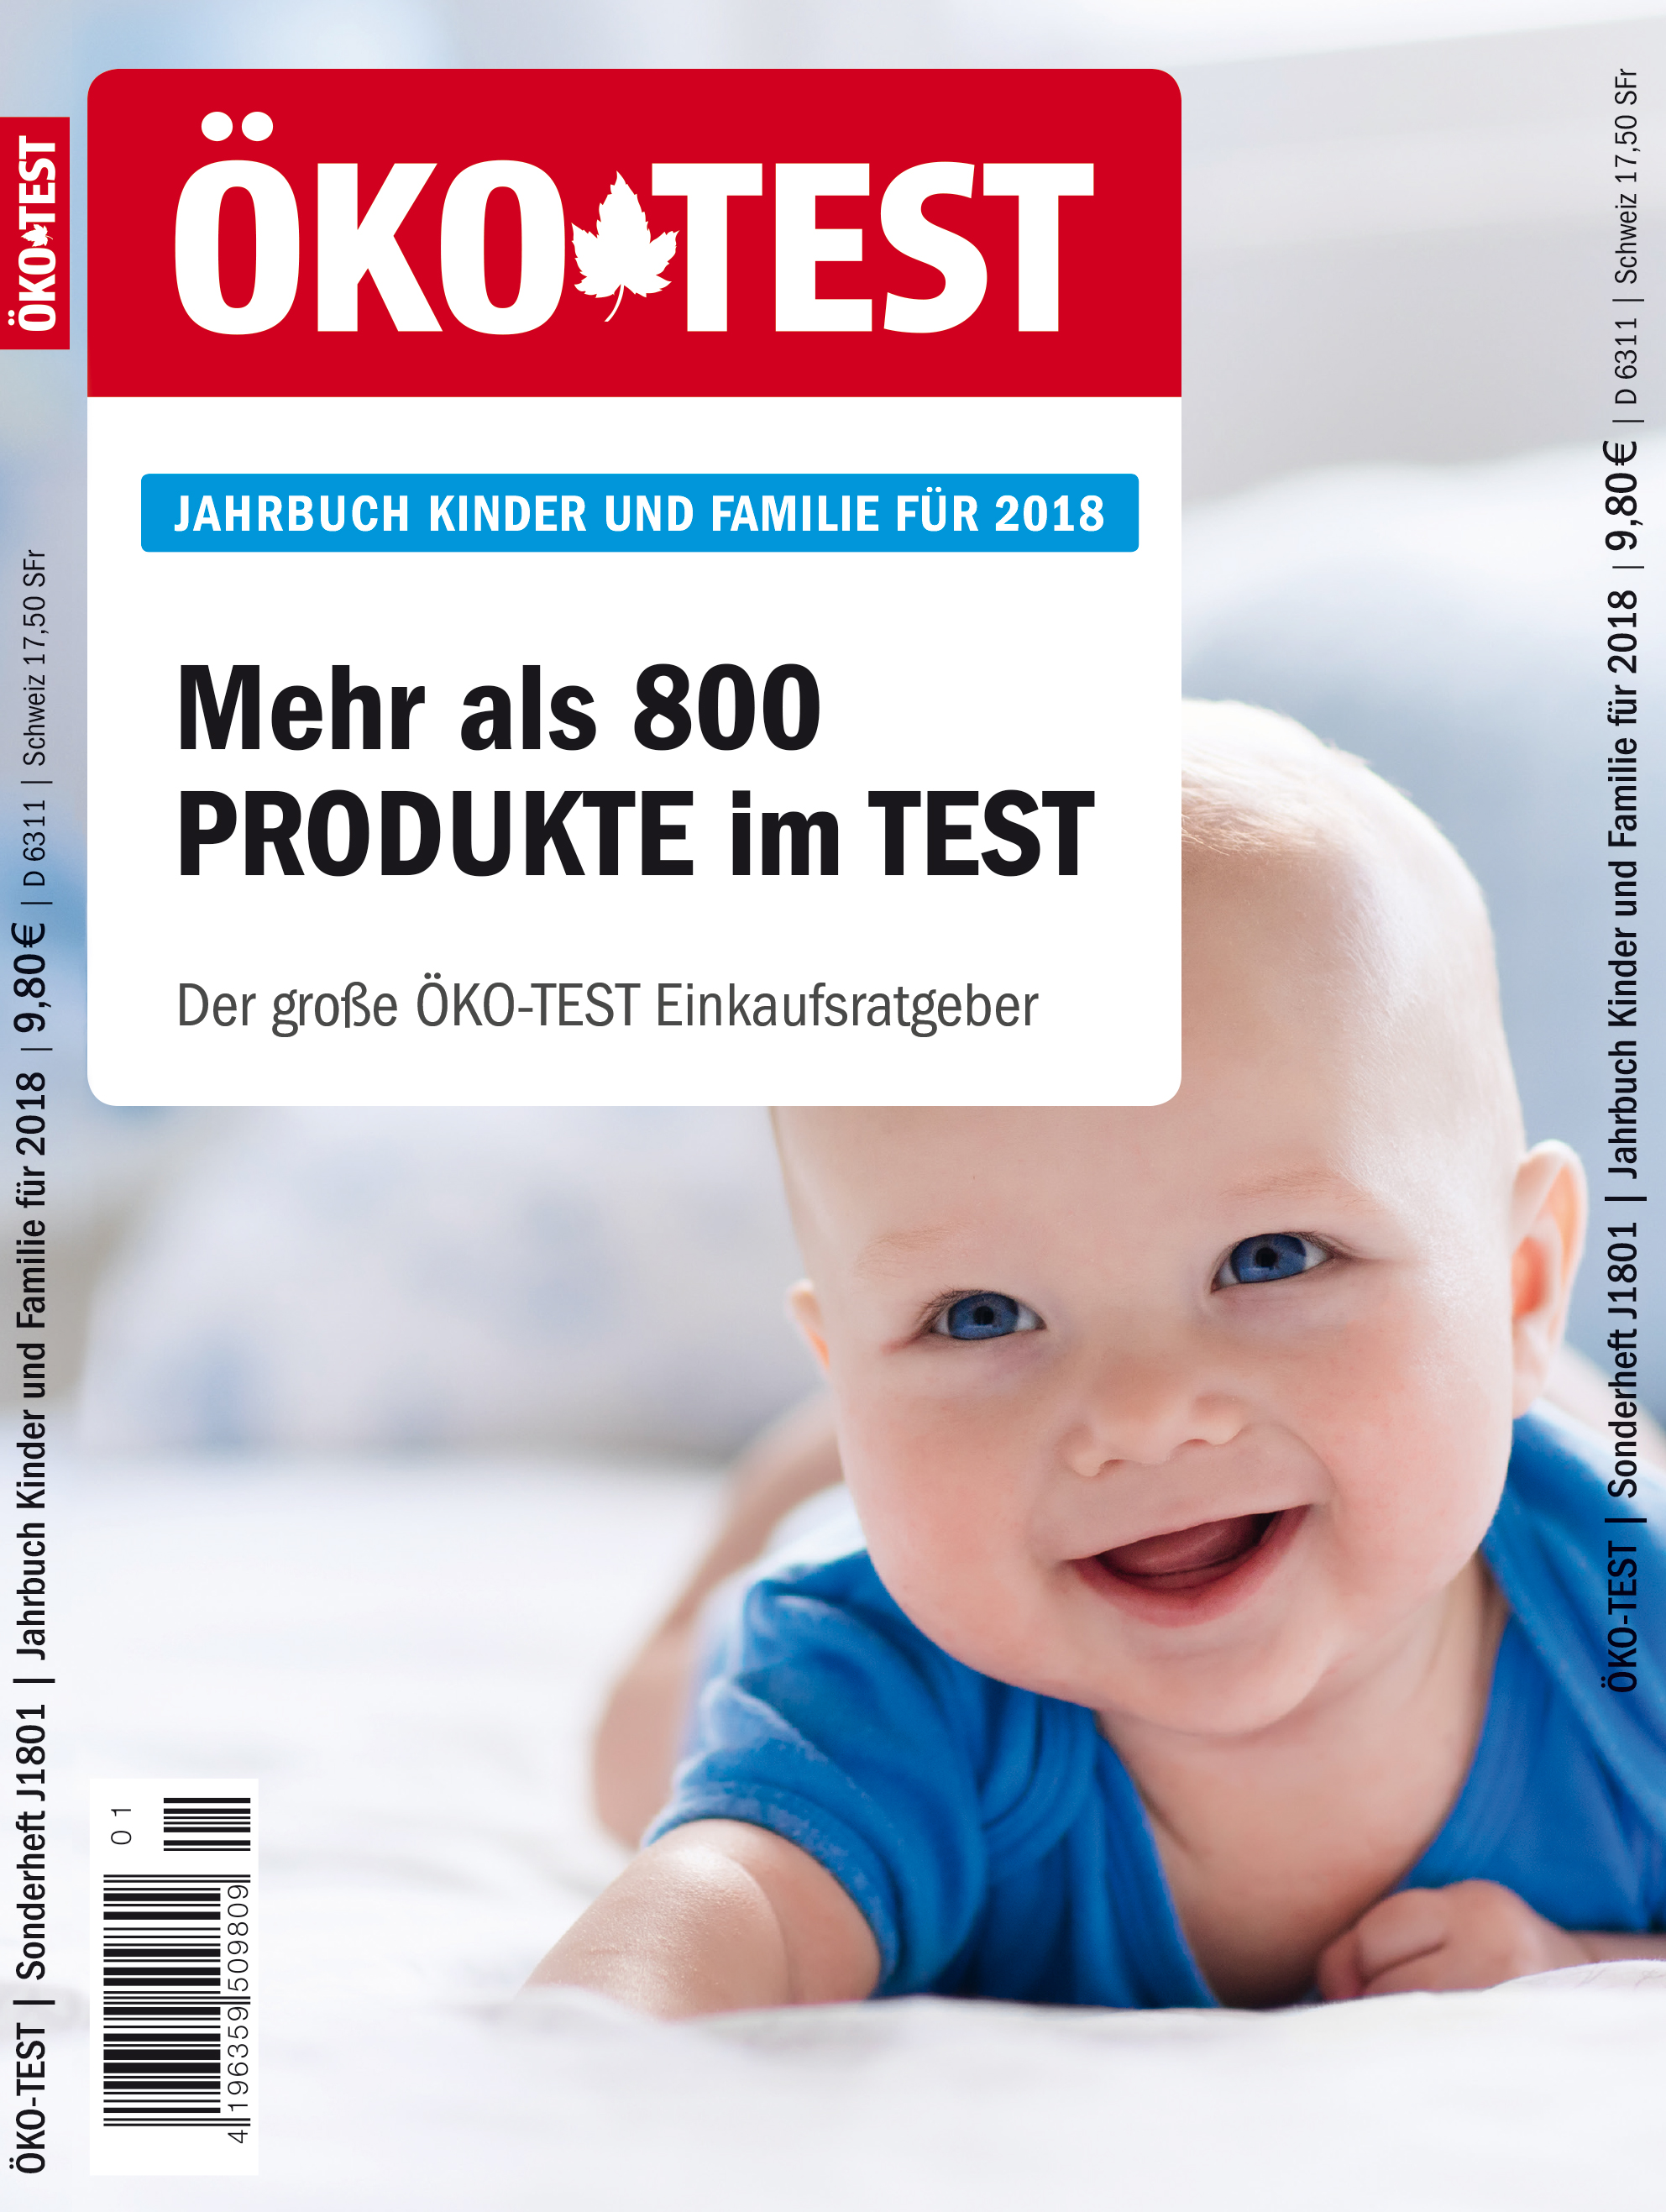 Bettdecken Kinder öko Test Presse Öko Test